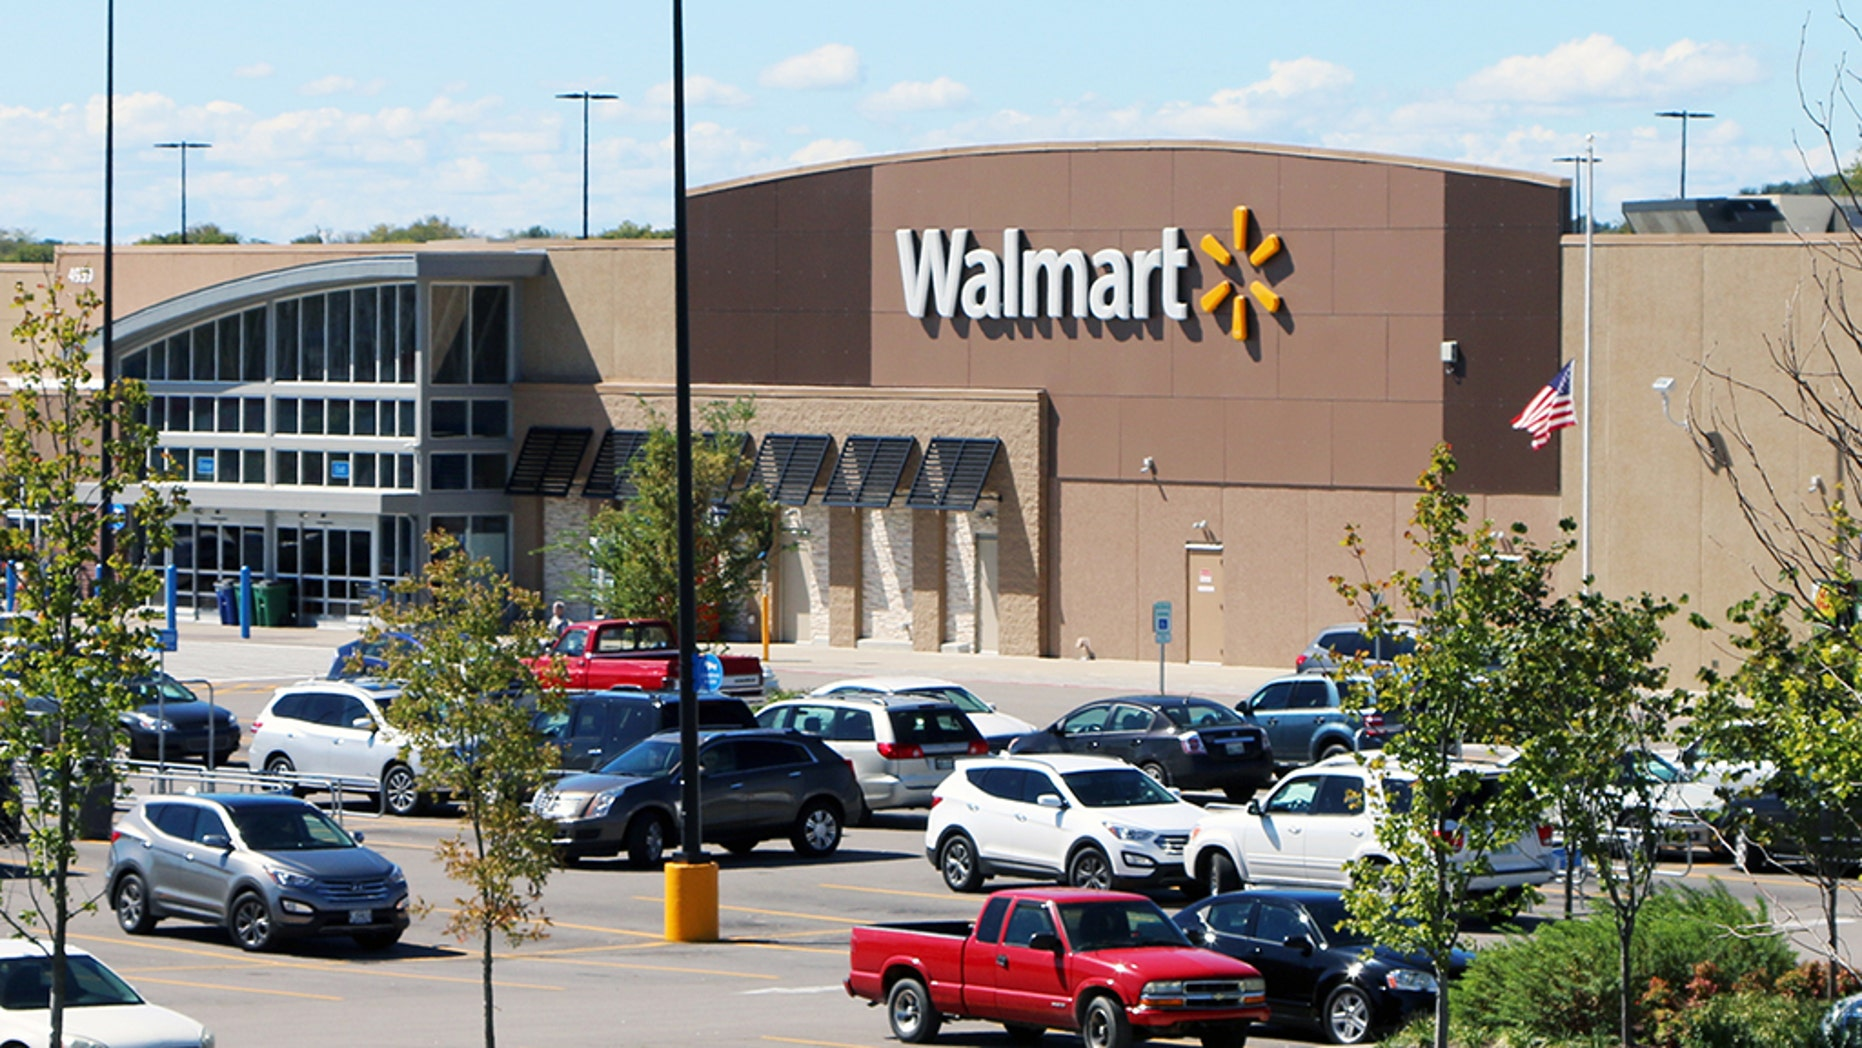 A Walmart employee quit his job while using the intercom.